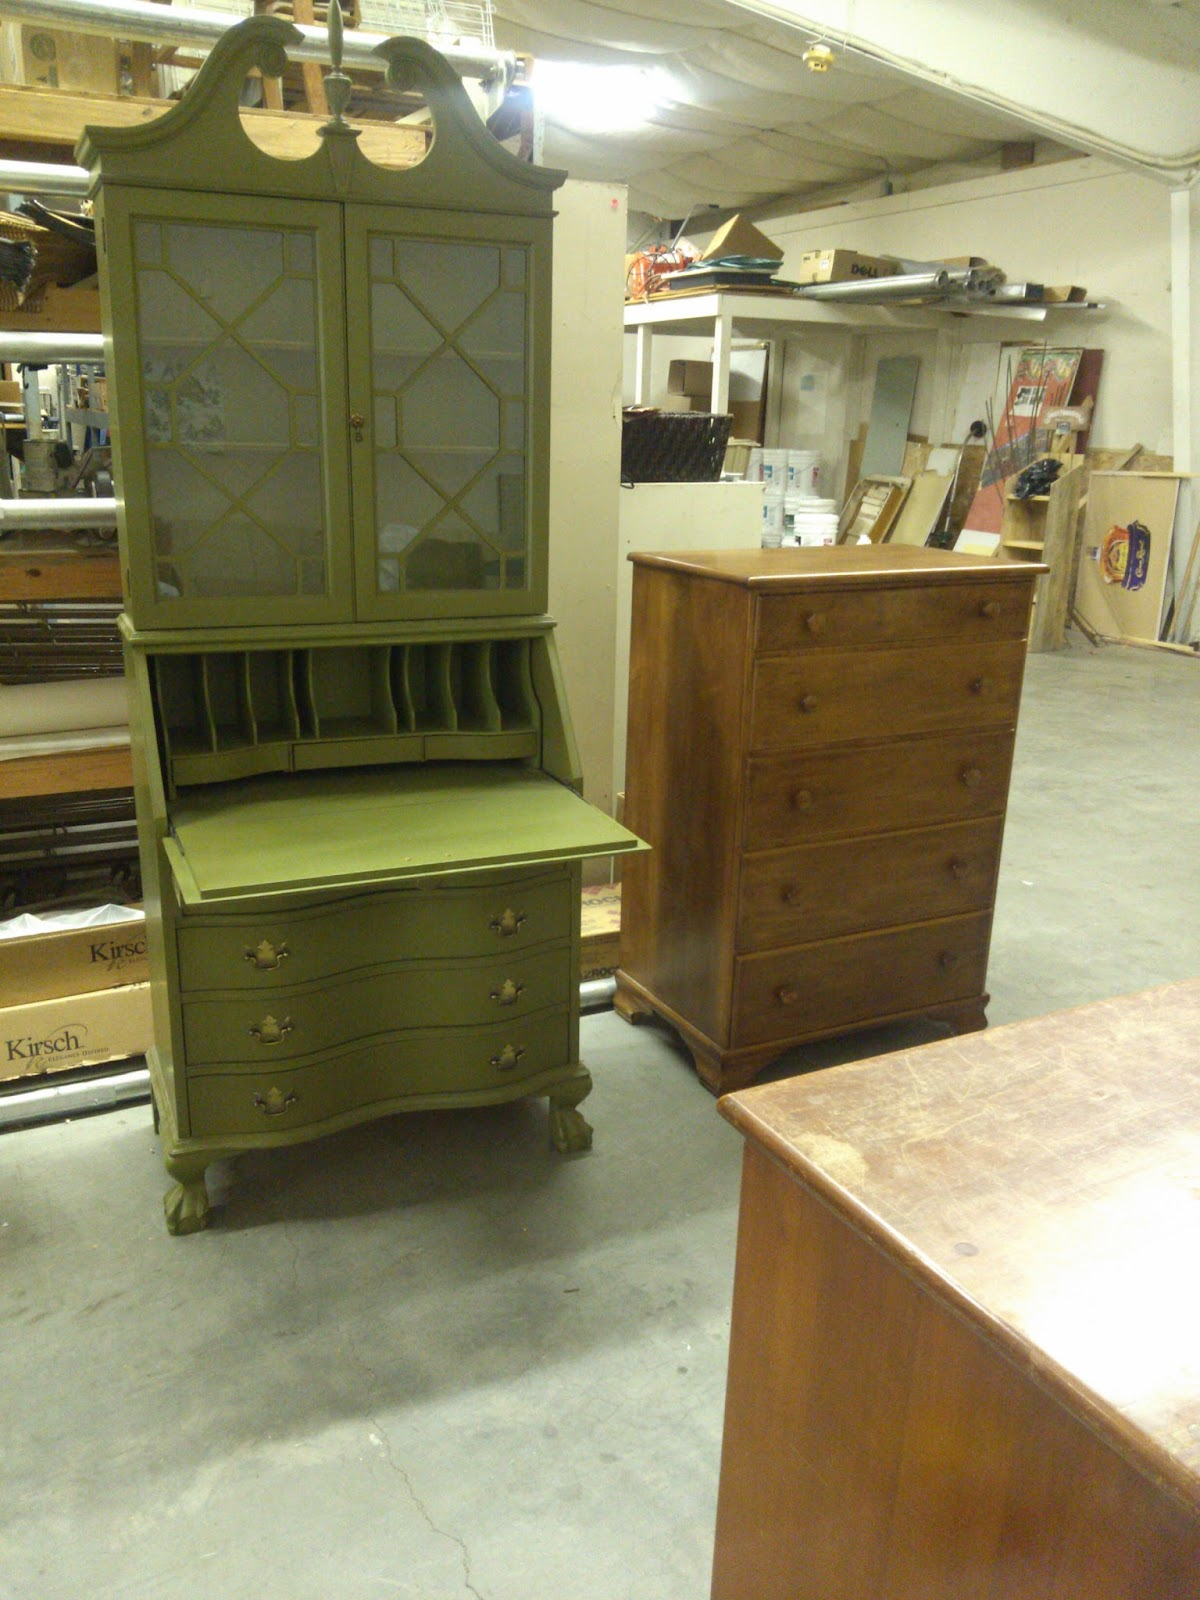 Here S The Before Shot It In Great Shape And Has All Fretwork Hardware Drawers Work But 1970 Antiqued Green Finish